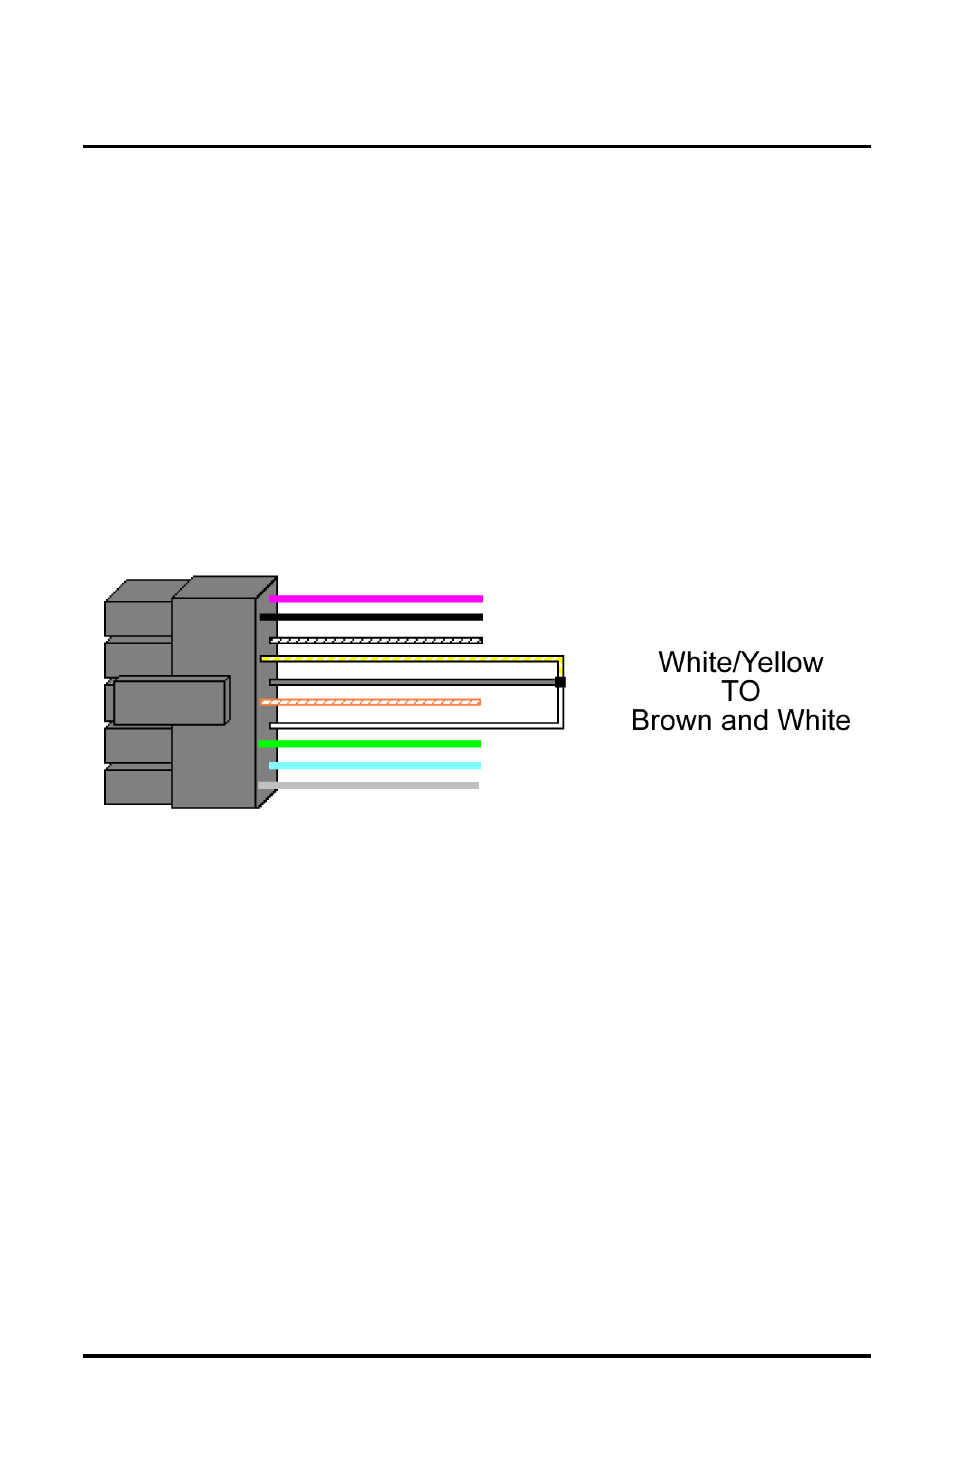 medium resolution of wire harness loopback connections controlled products systems group 212ilw user manual page 26 28